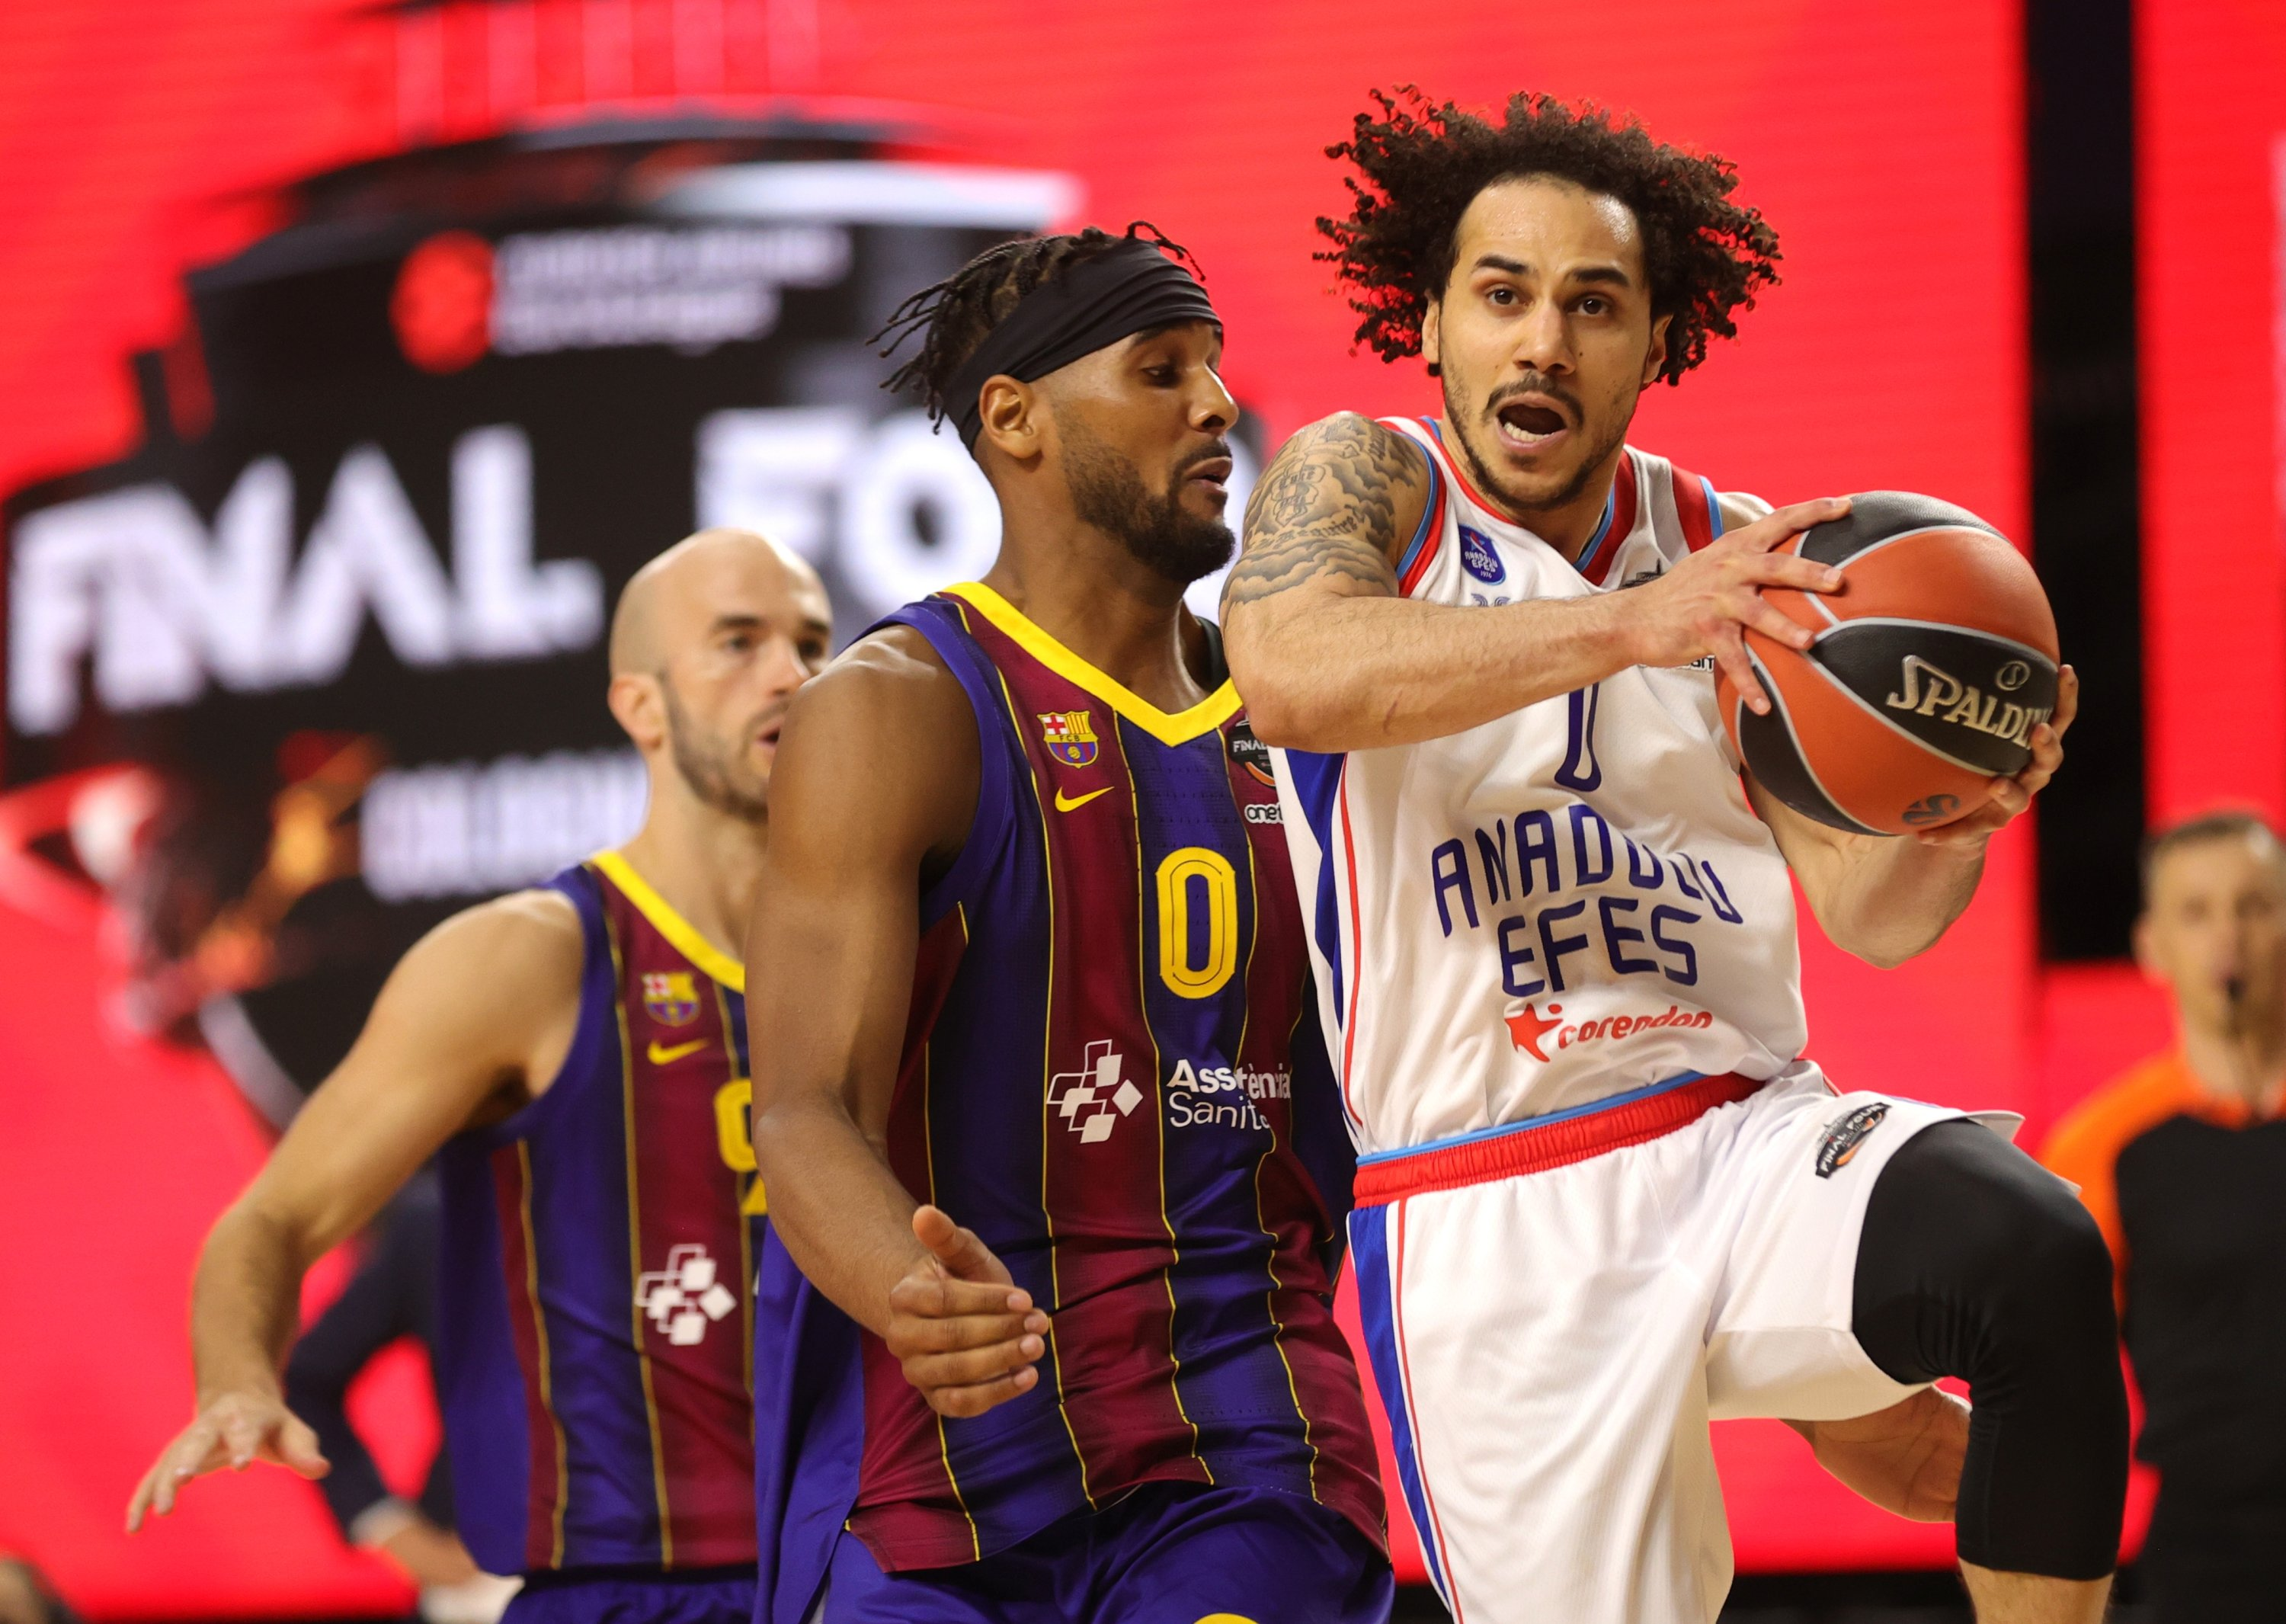 Anadolu Efes' Shane Larkin (R) in action against Barcelona's Brandon Davies (C) during the EuroLeague basketball final match between FC Barcelona and Anadolu Efes Istanbul in Cologne, Germany, 30 May 2021. (EPA Photo)